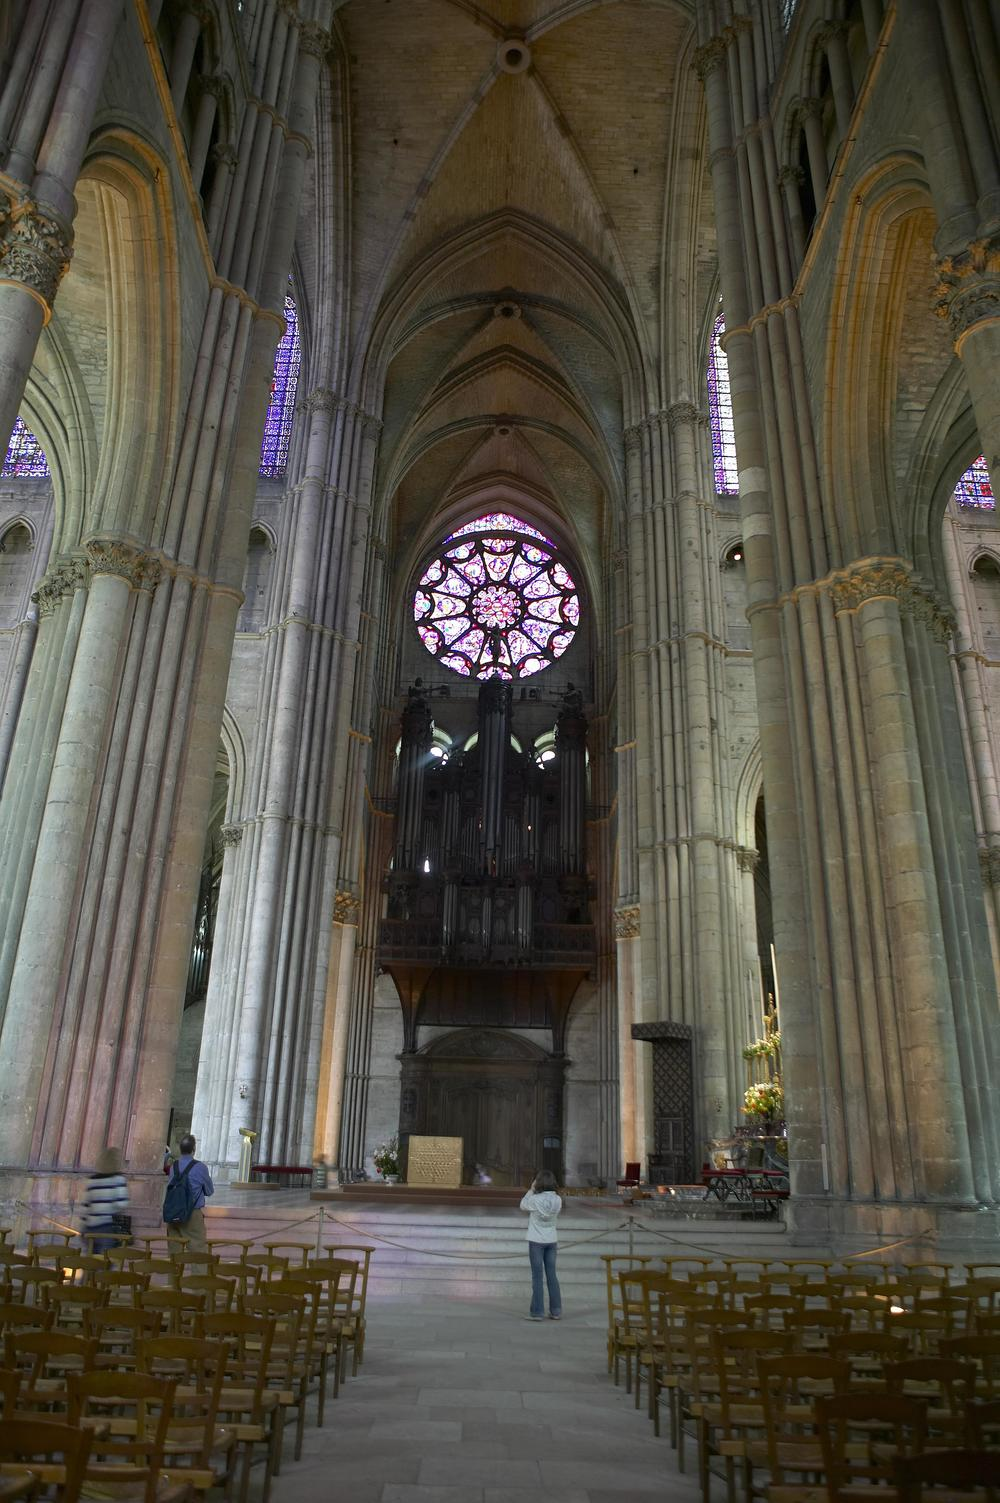 View of the Organ, Reims Cathedral